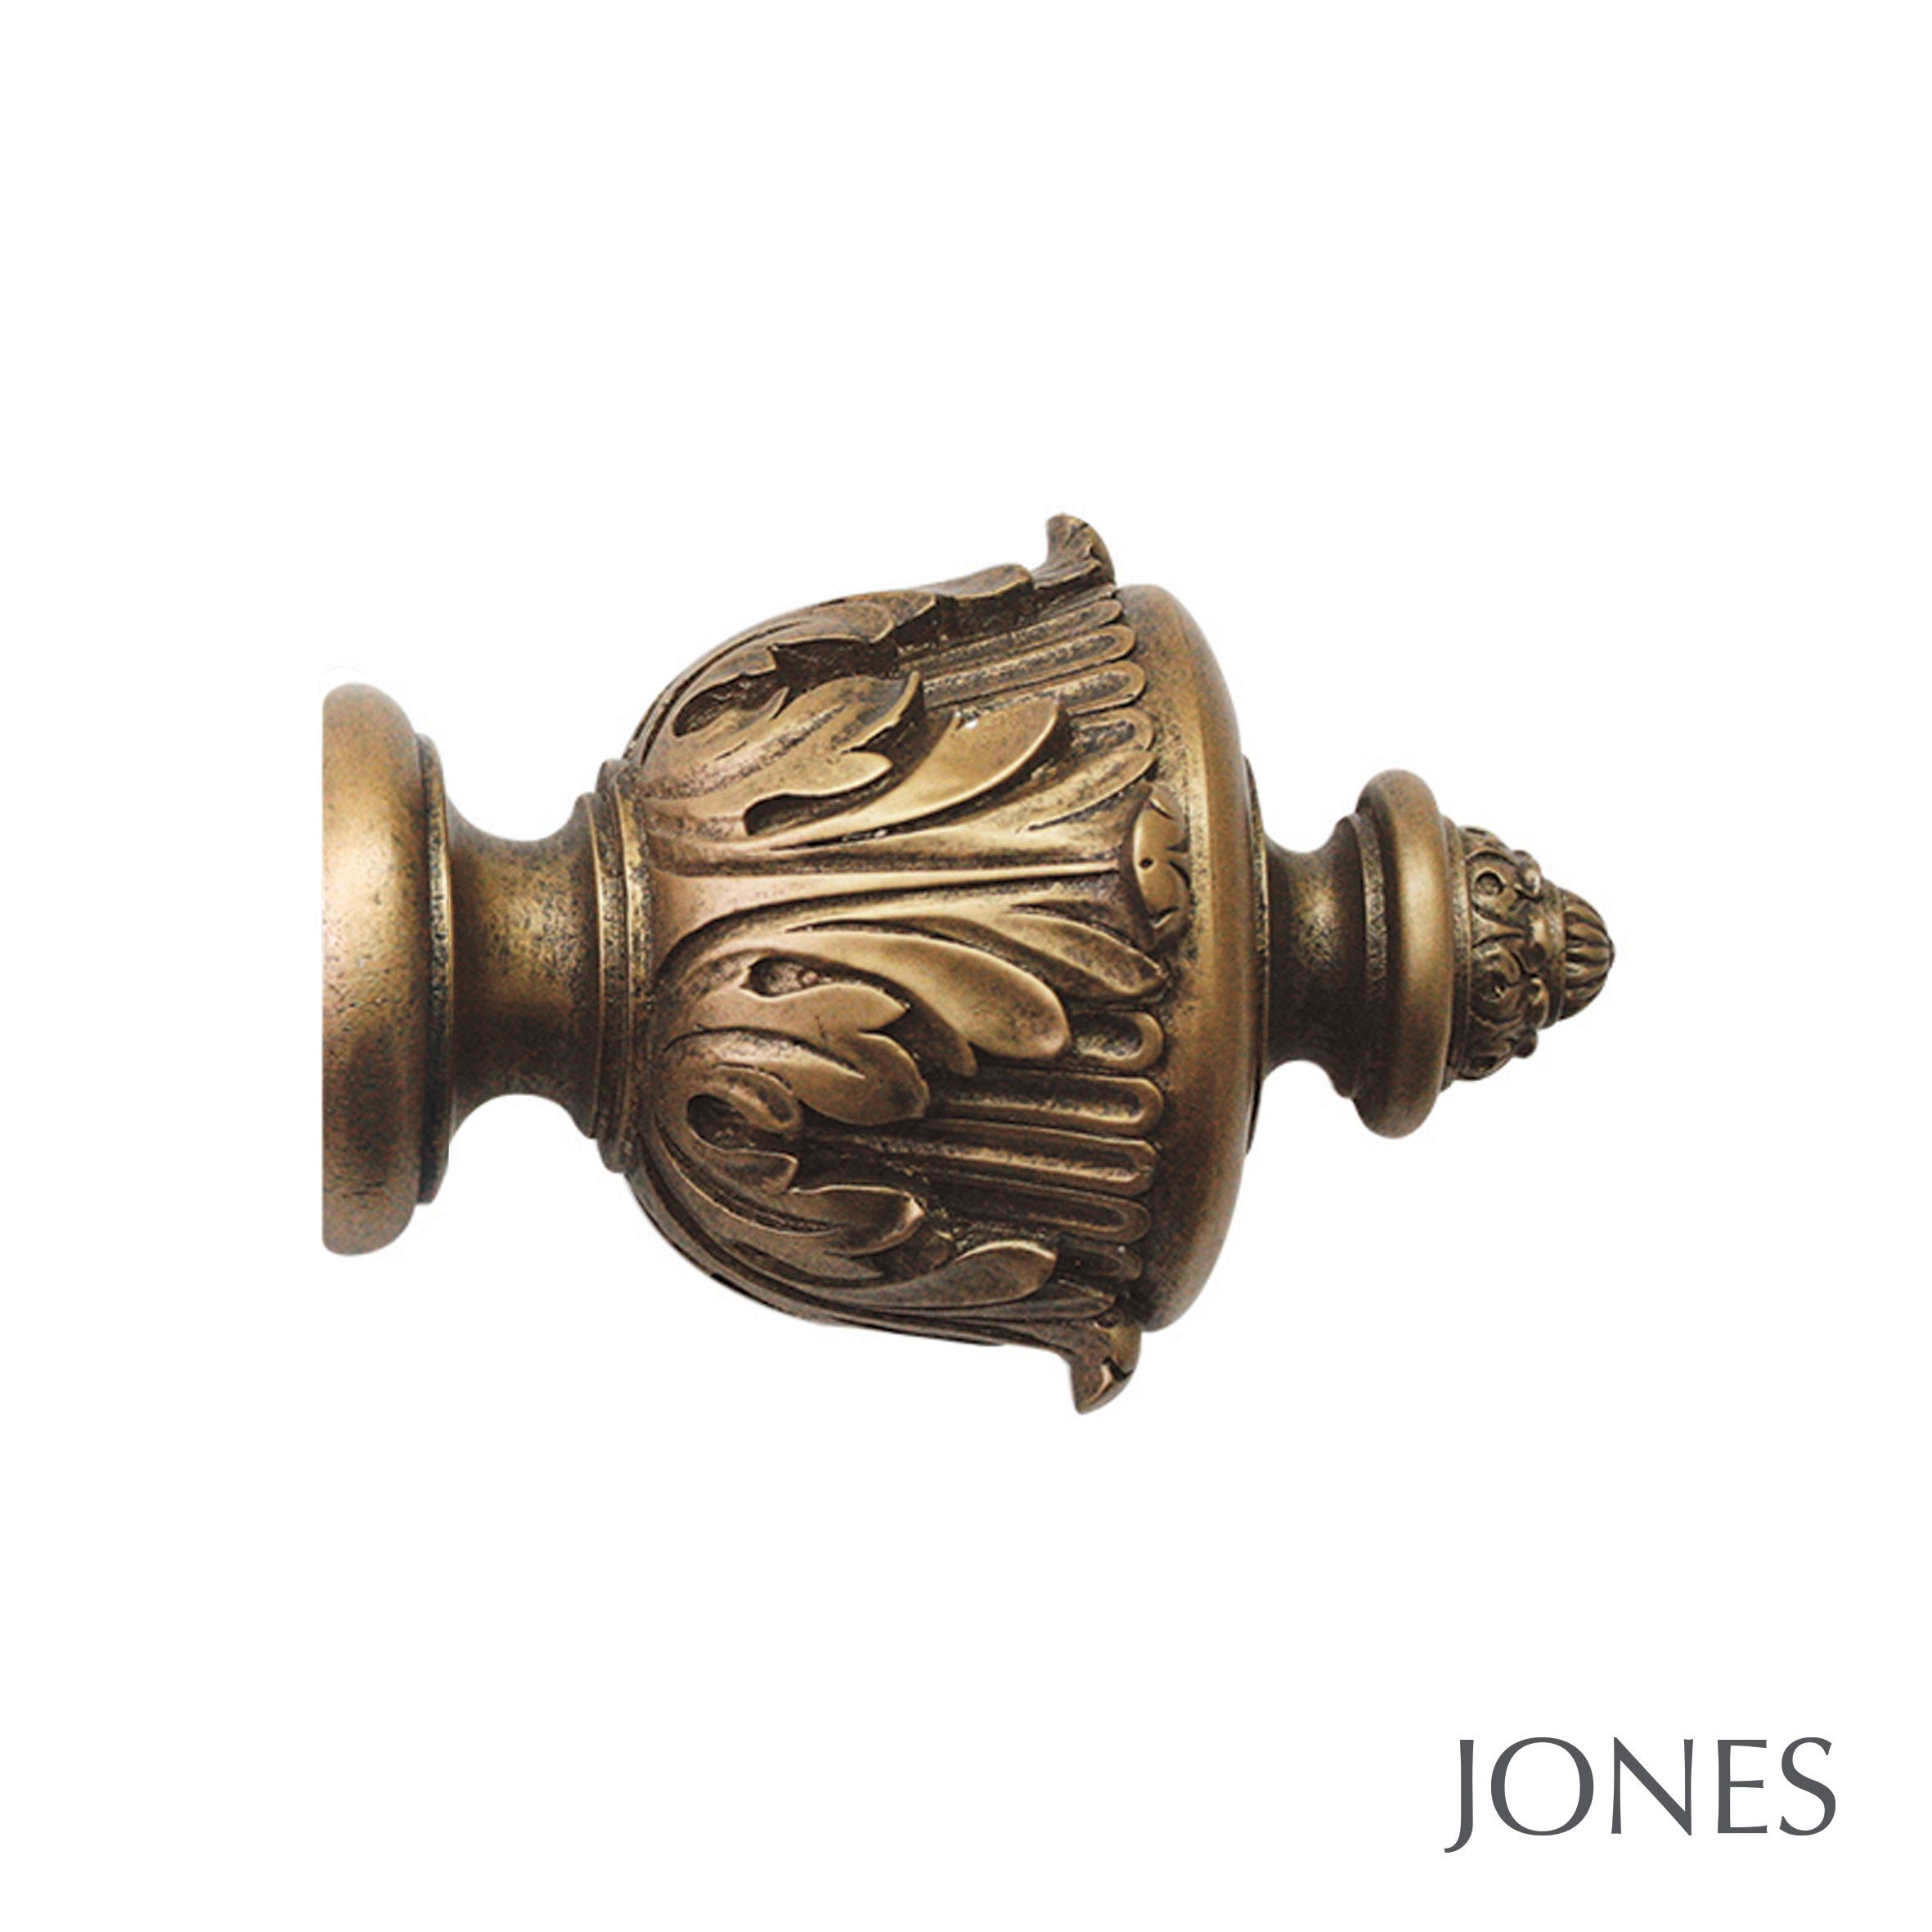 50mm Jones Florentine Acanthus Finial antique gold